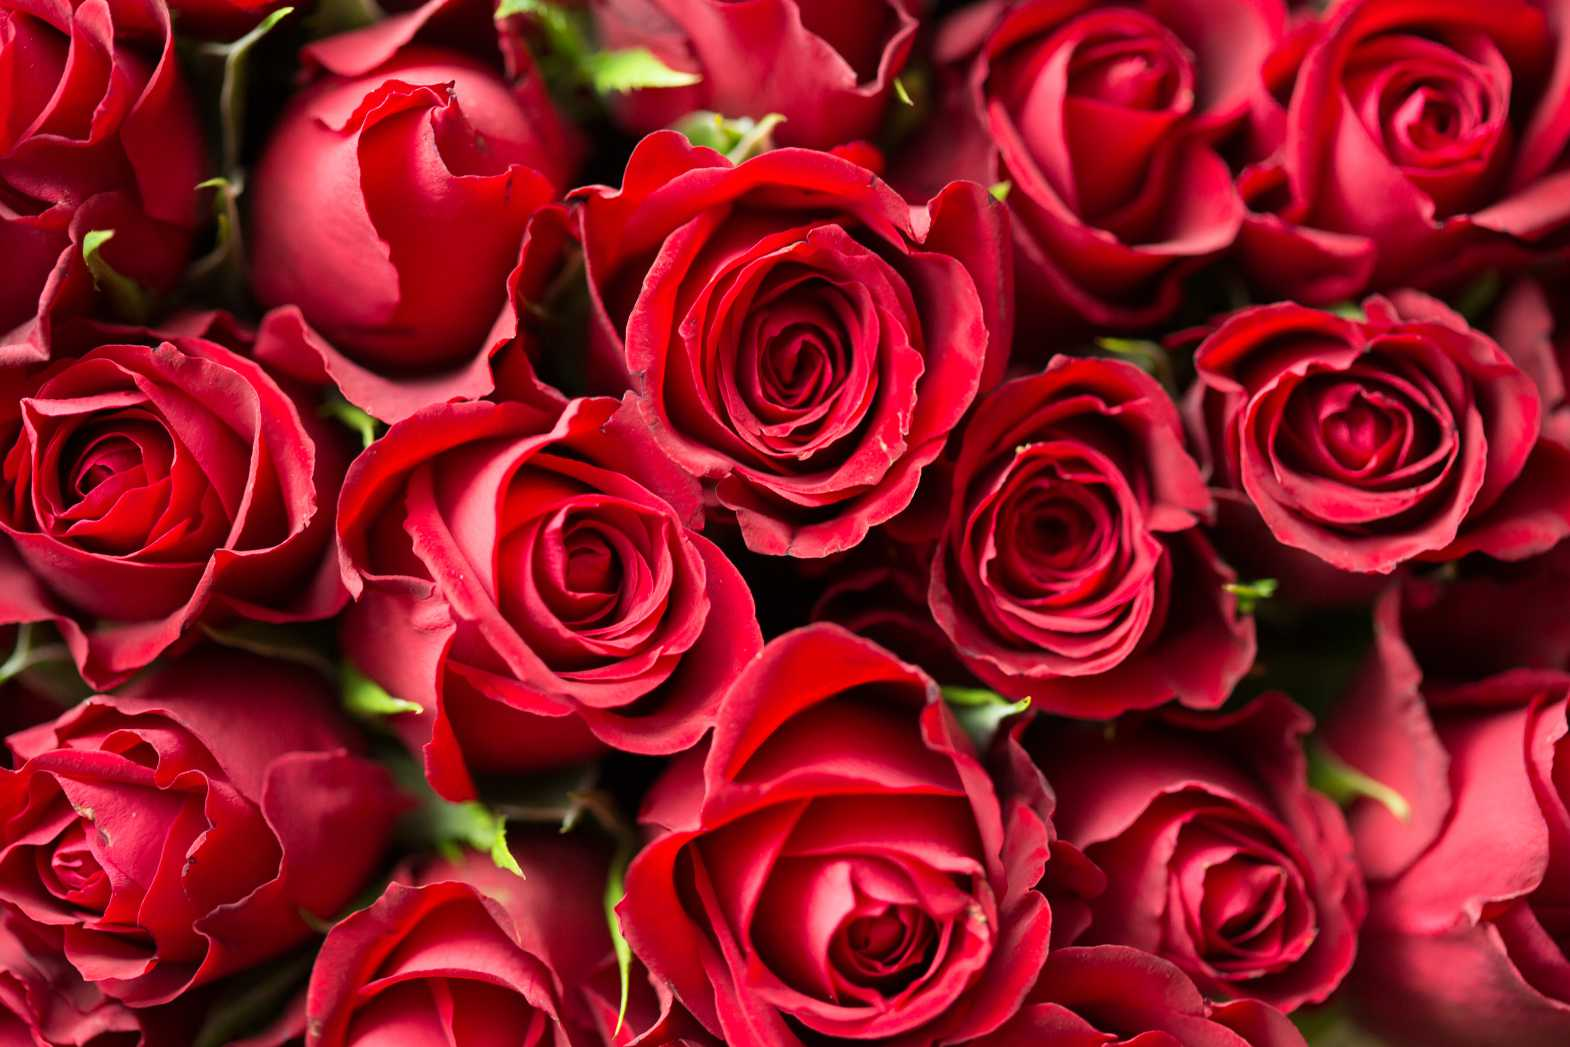 valentines day red roses close up free stock photos picjumbo.com  - Valentýnské fotografie zdarma – picjumbo.com